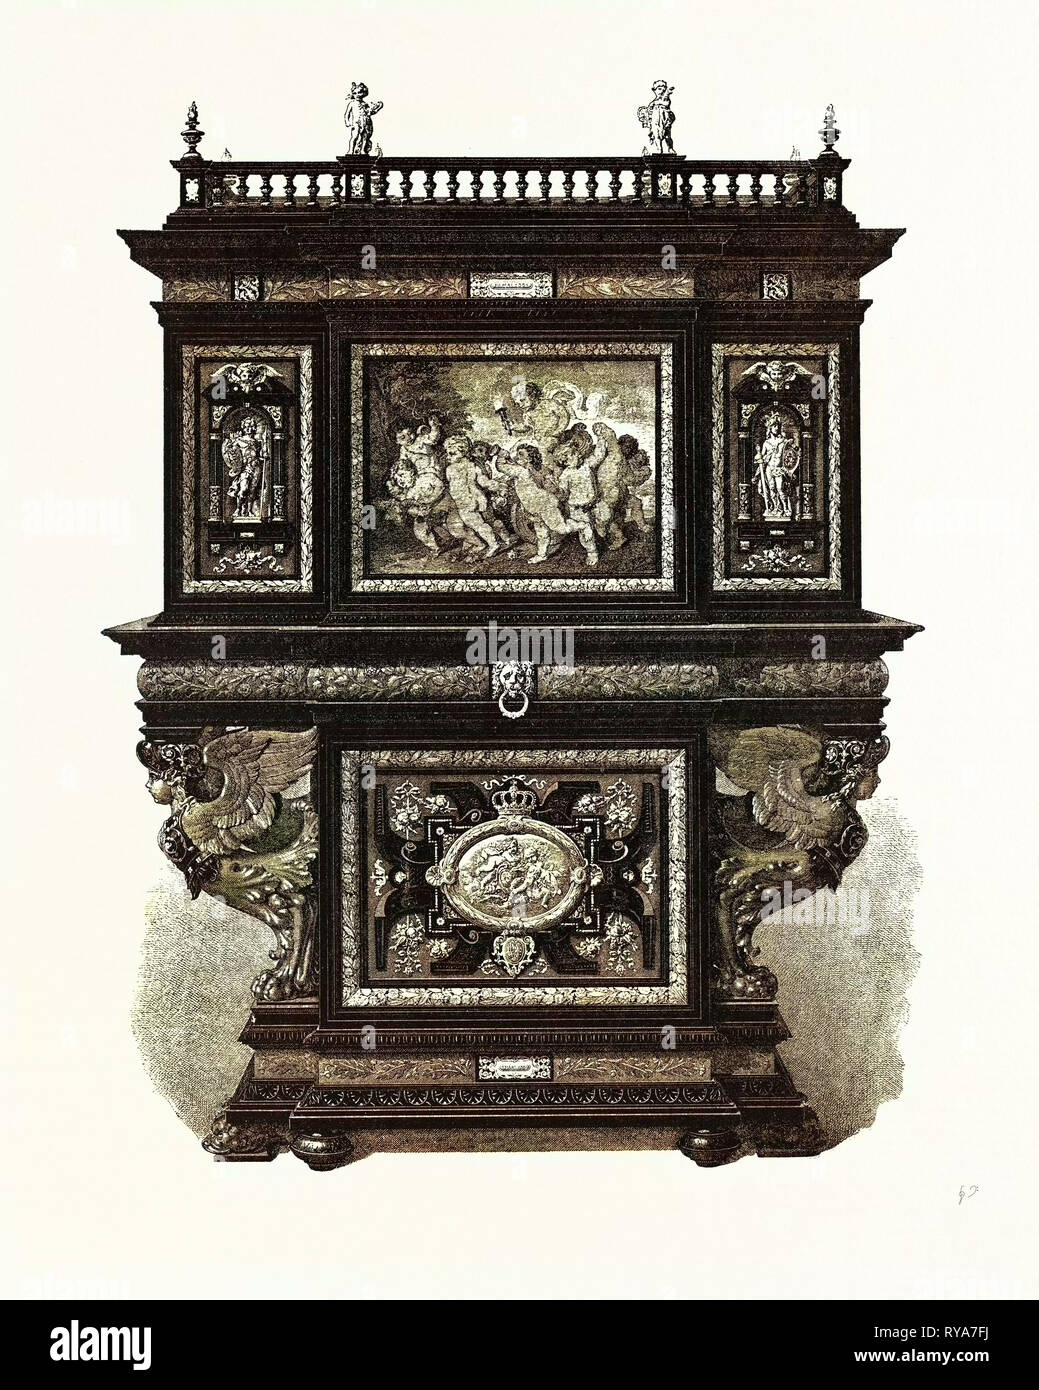 Cabinet Presented to the Crown Prince and Princess of Austro-Hungary - Stock Image